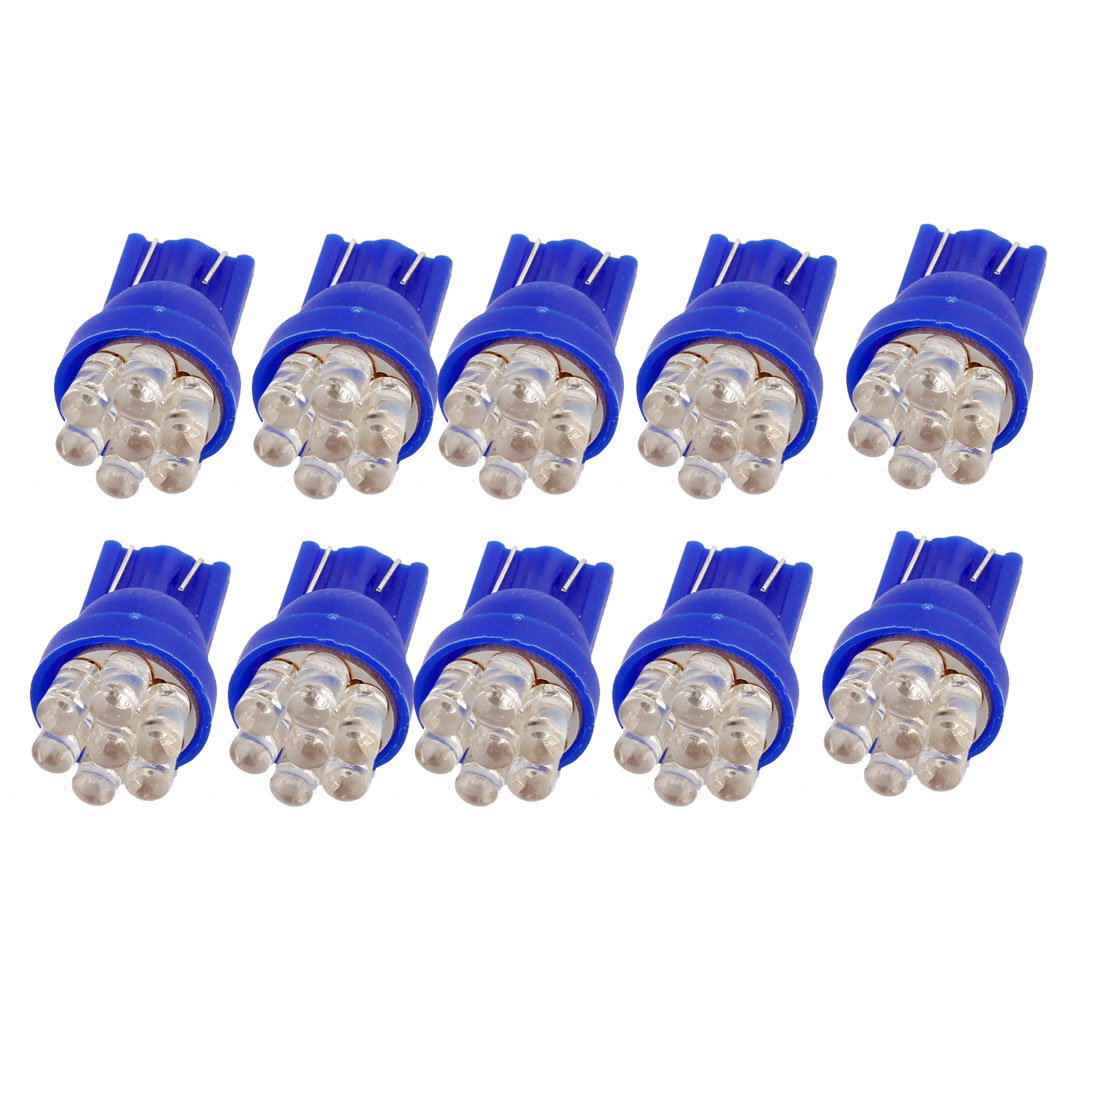 T10 158 168 194 W5W Blue 7 LEDs Car Lights Dashboard Lamps Bulbs 10PCS internal